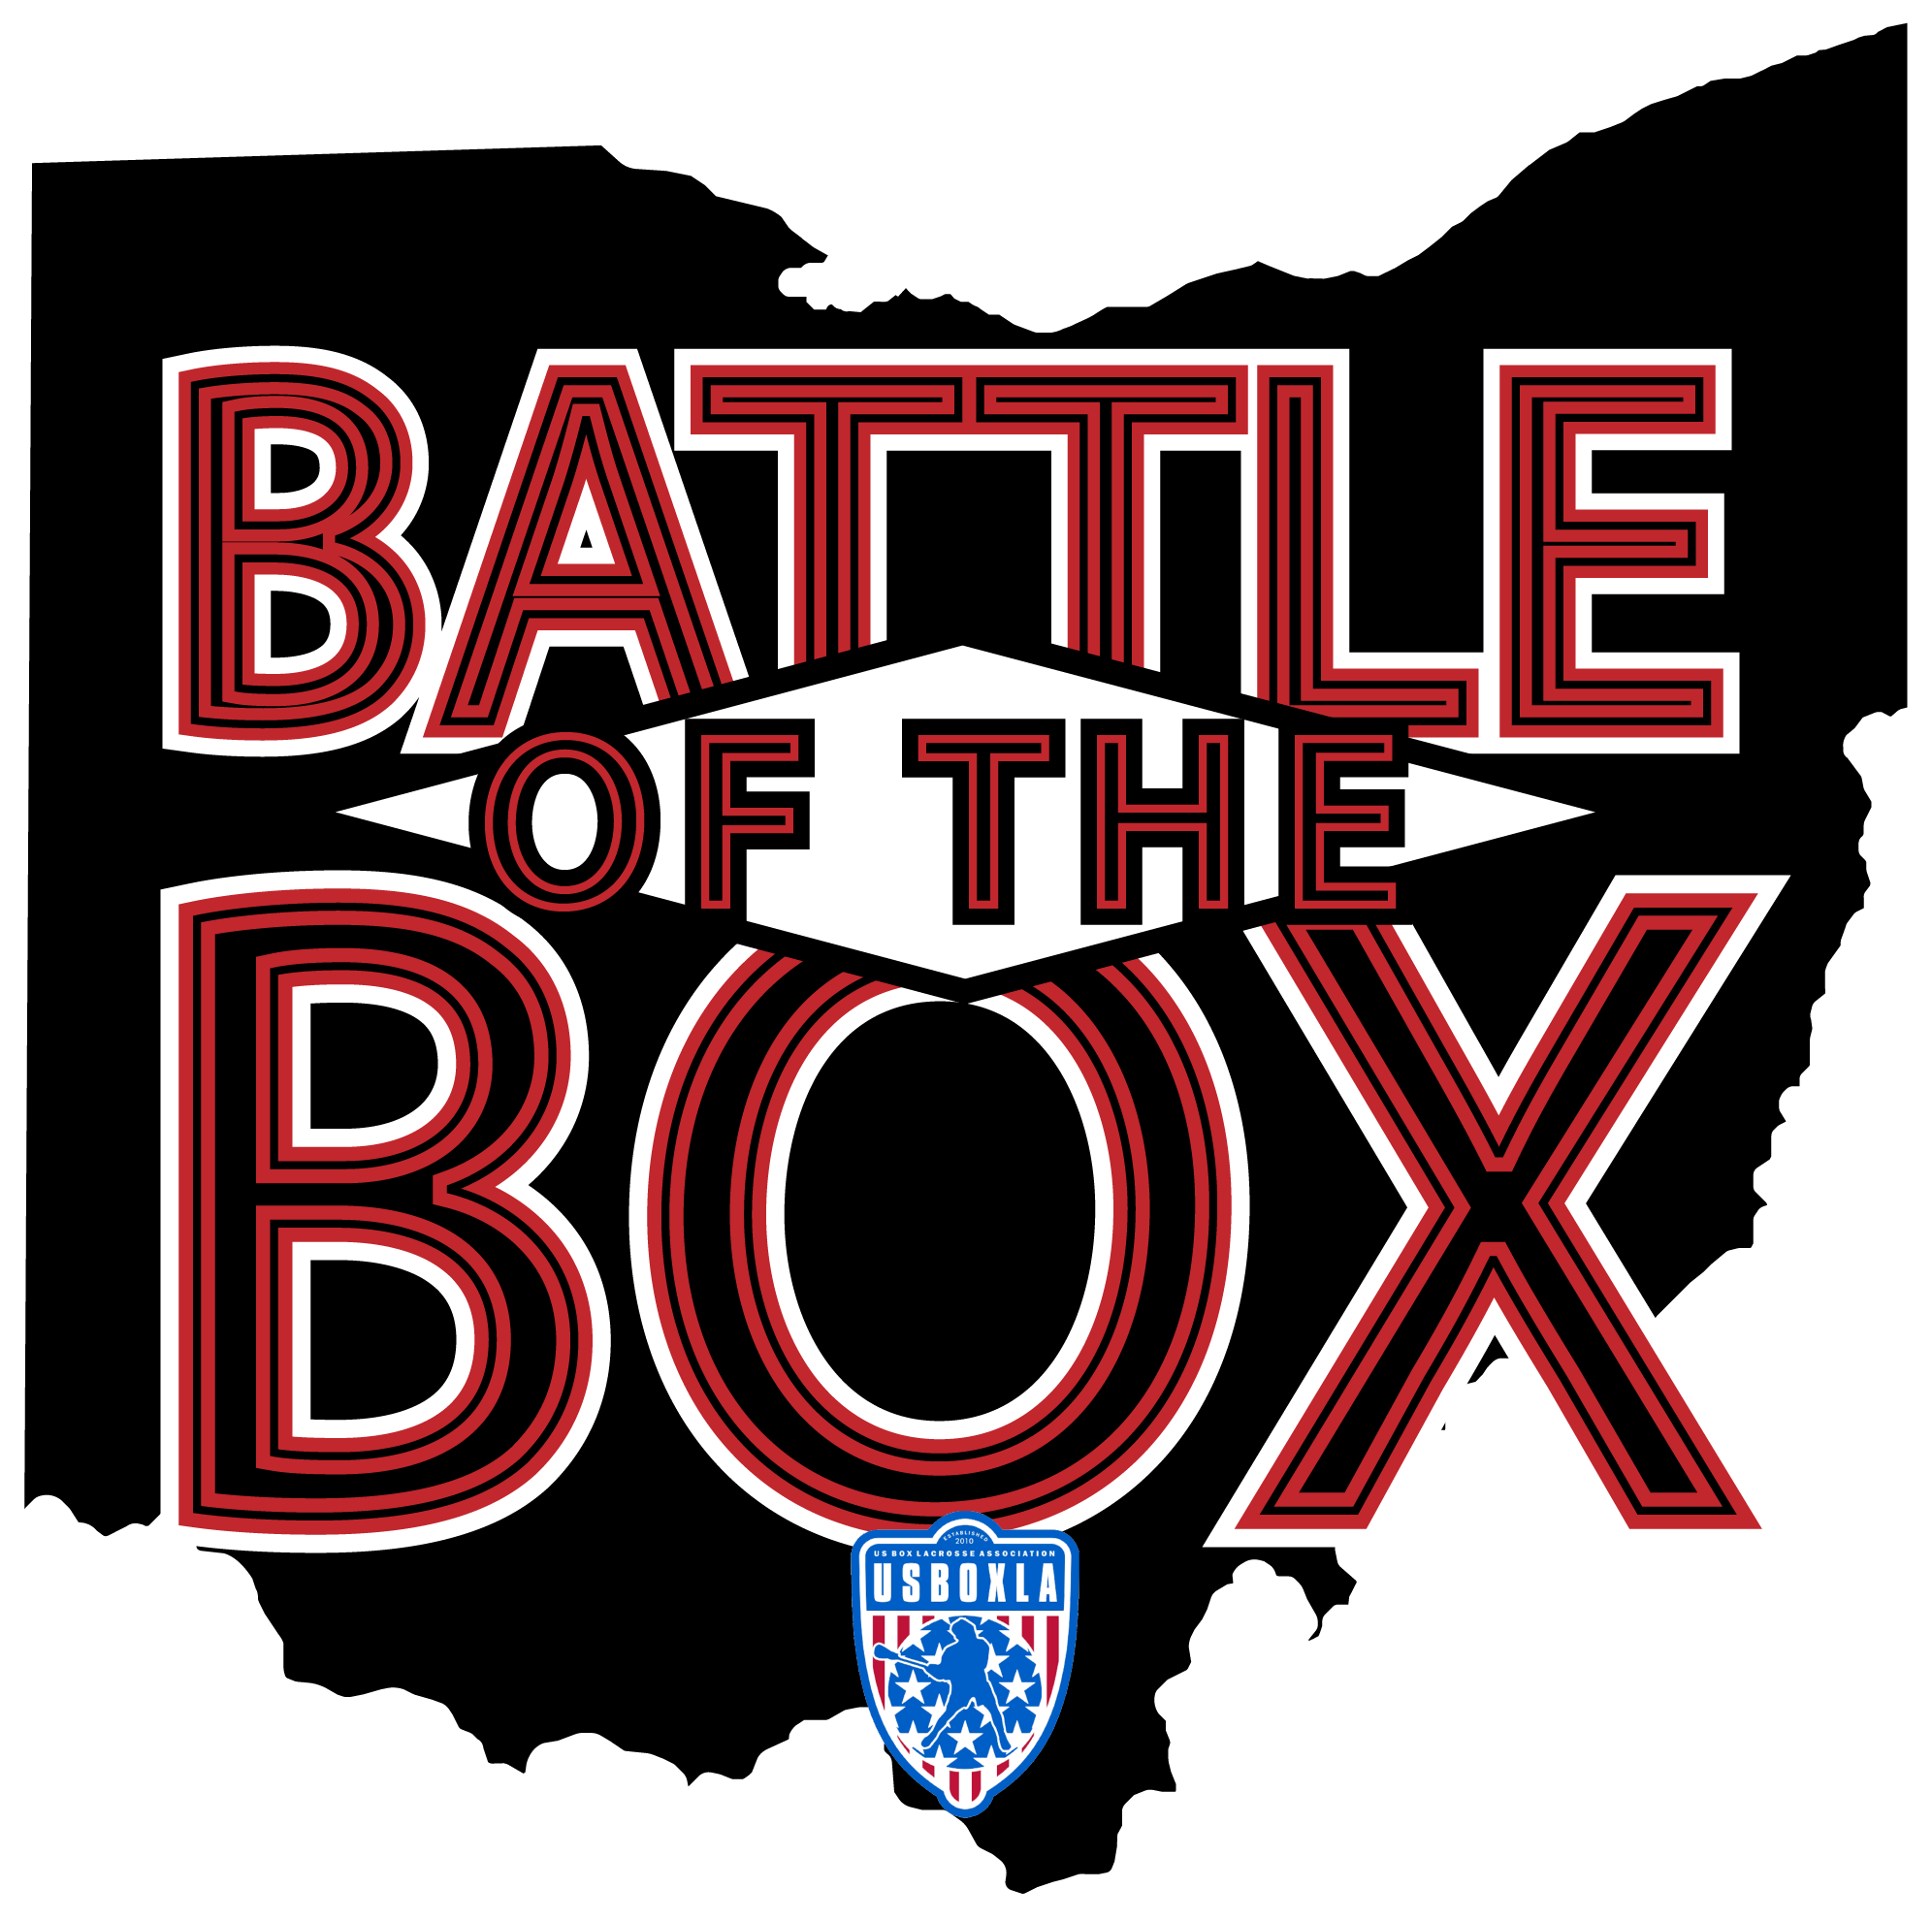 Battle of the box